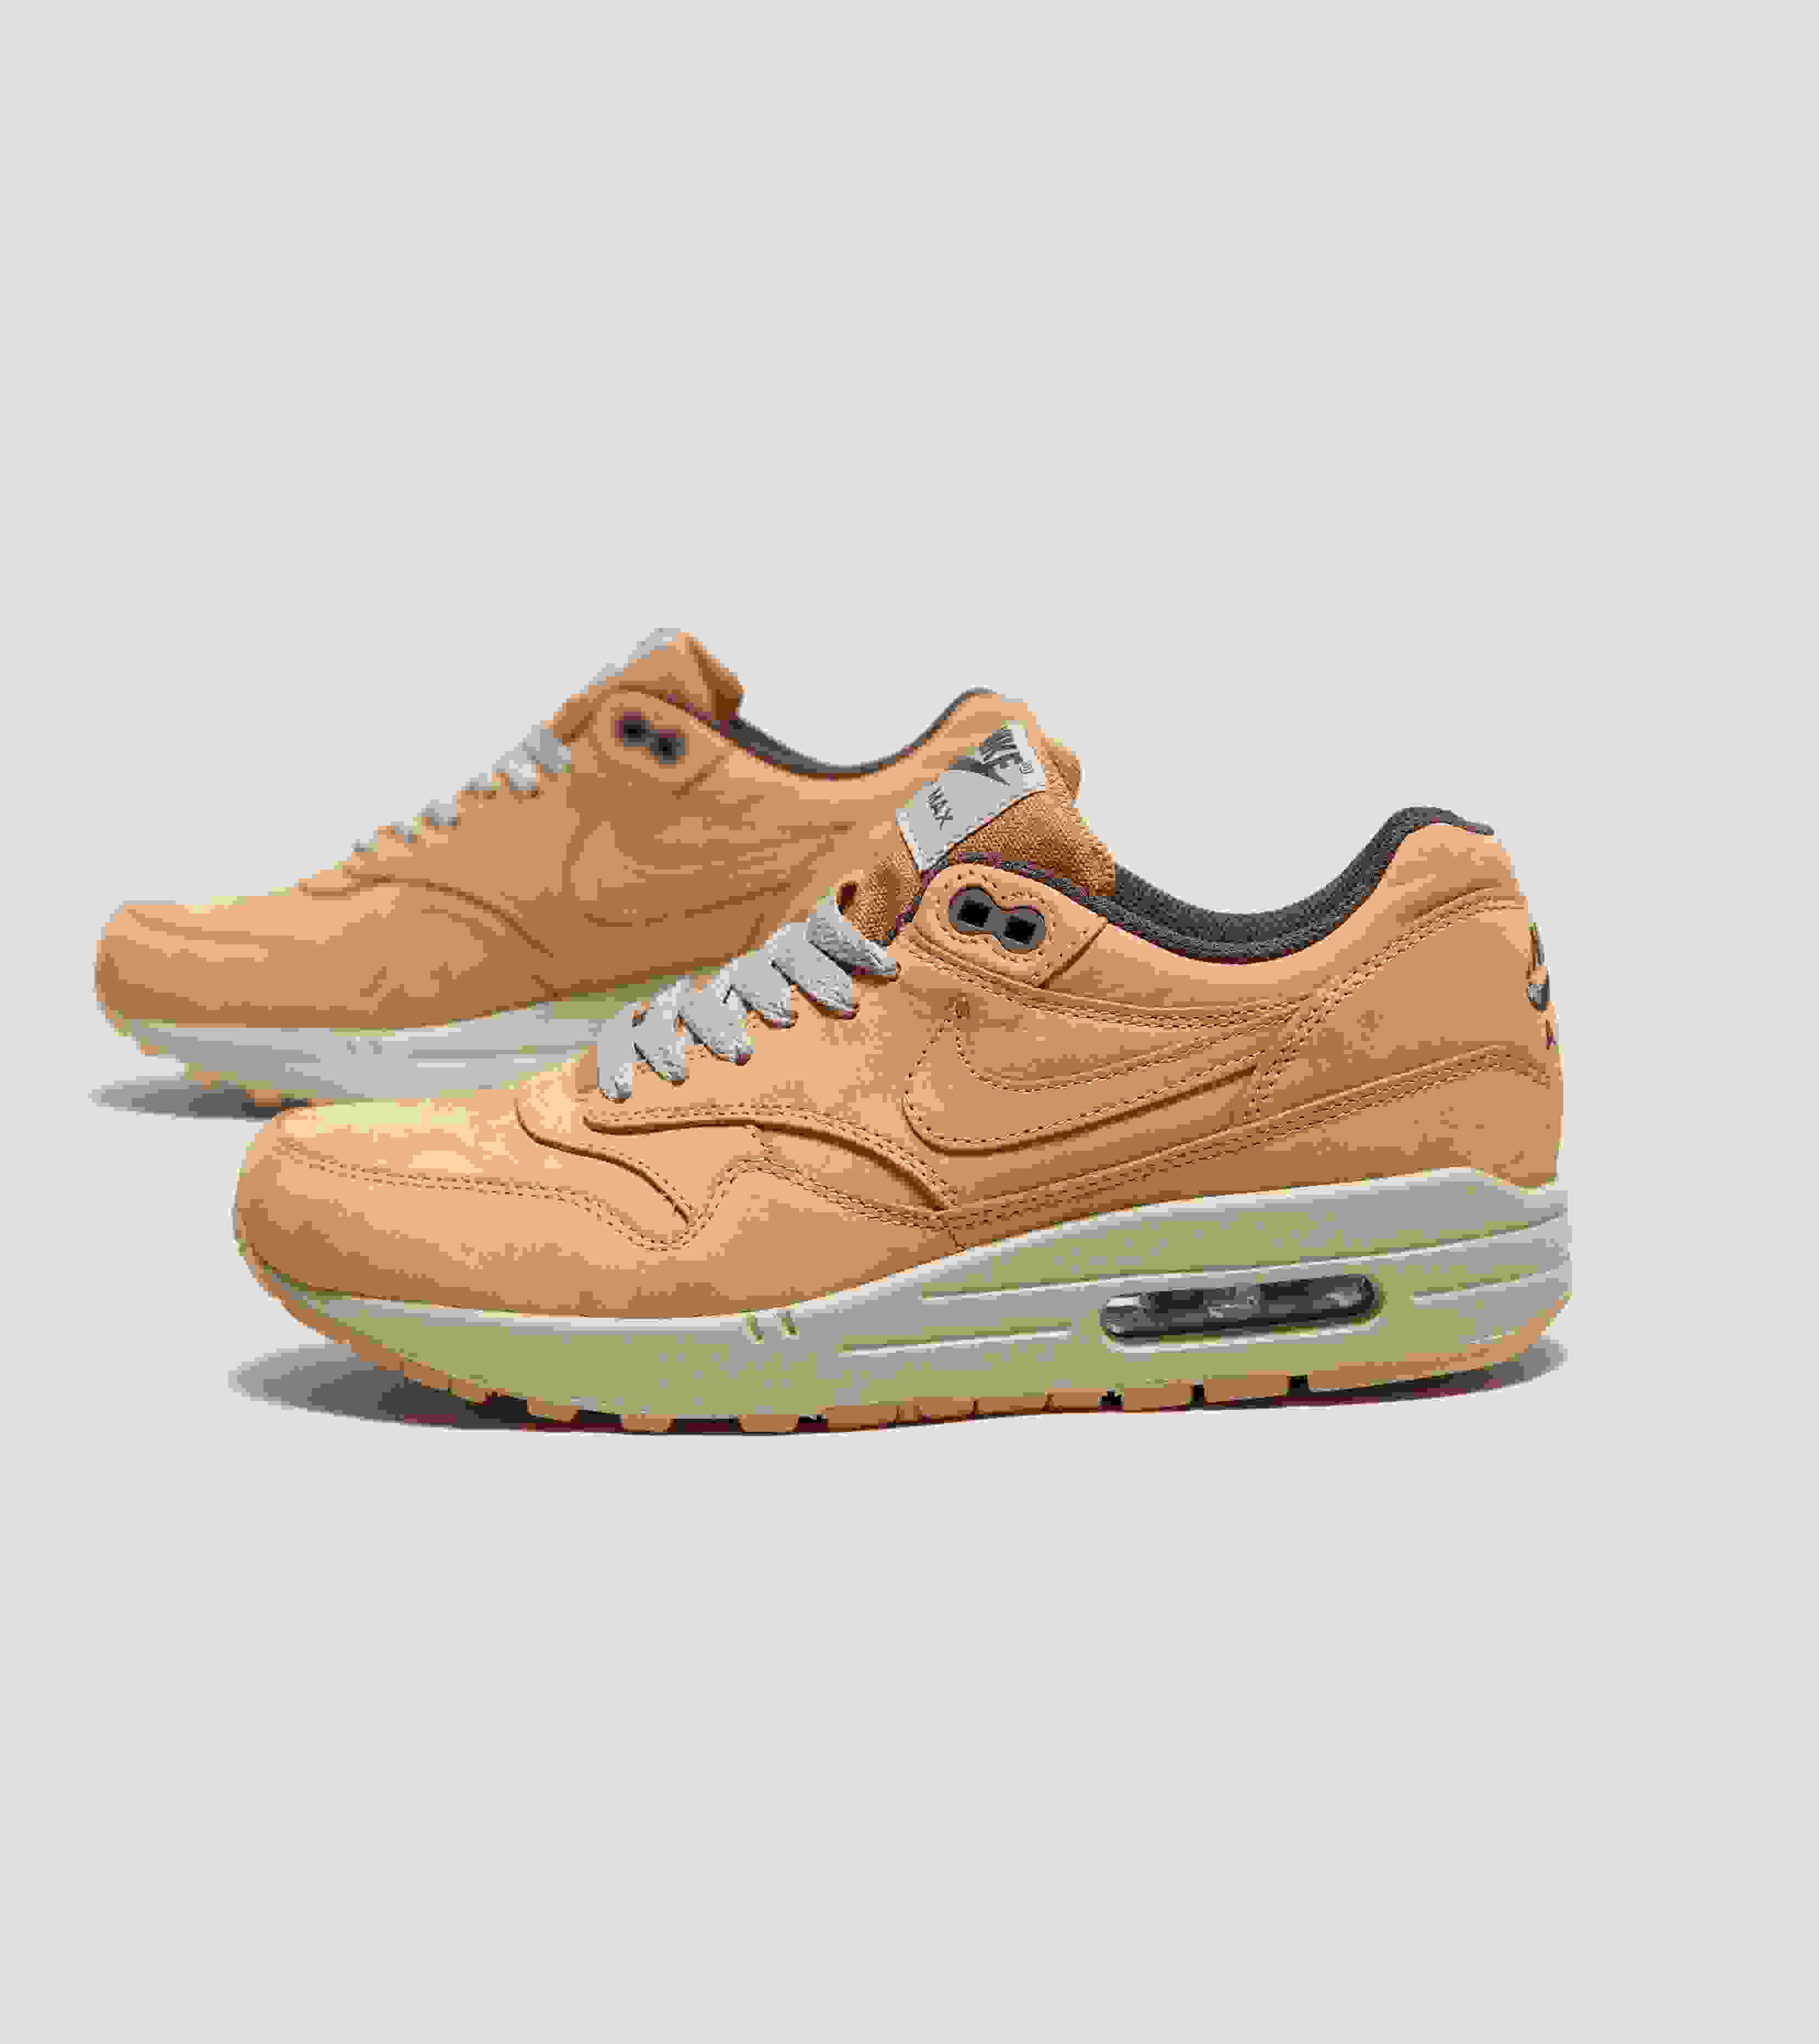 a9ad4c4a0c70 leather nike air max premium The ...